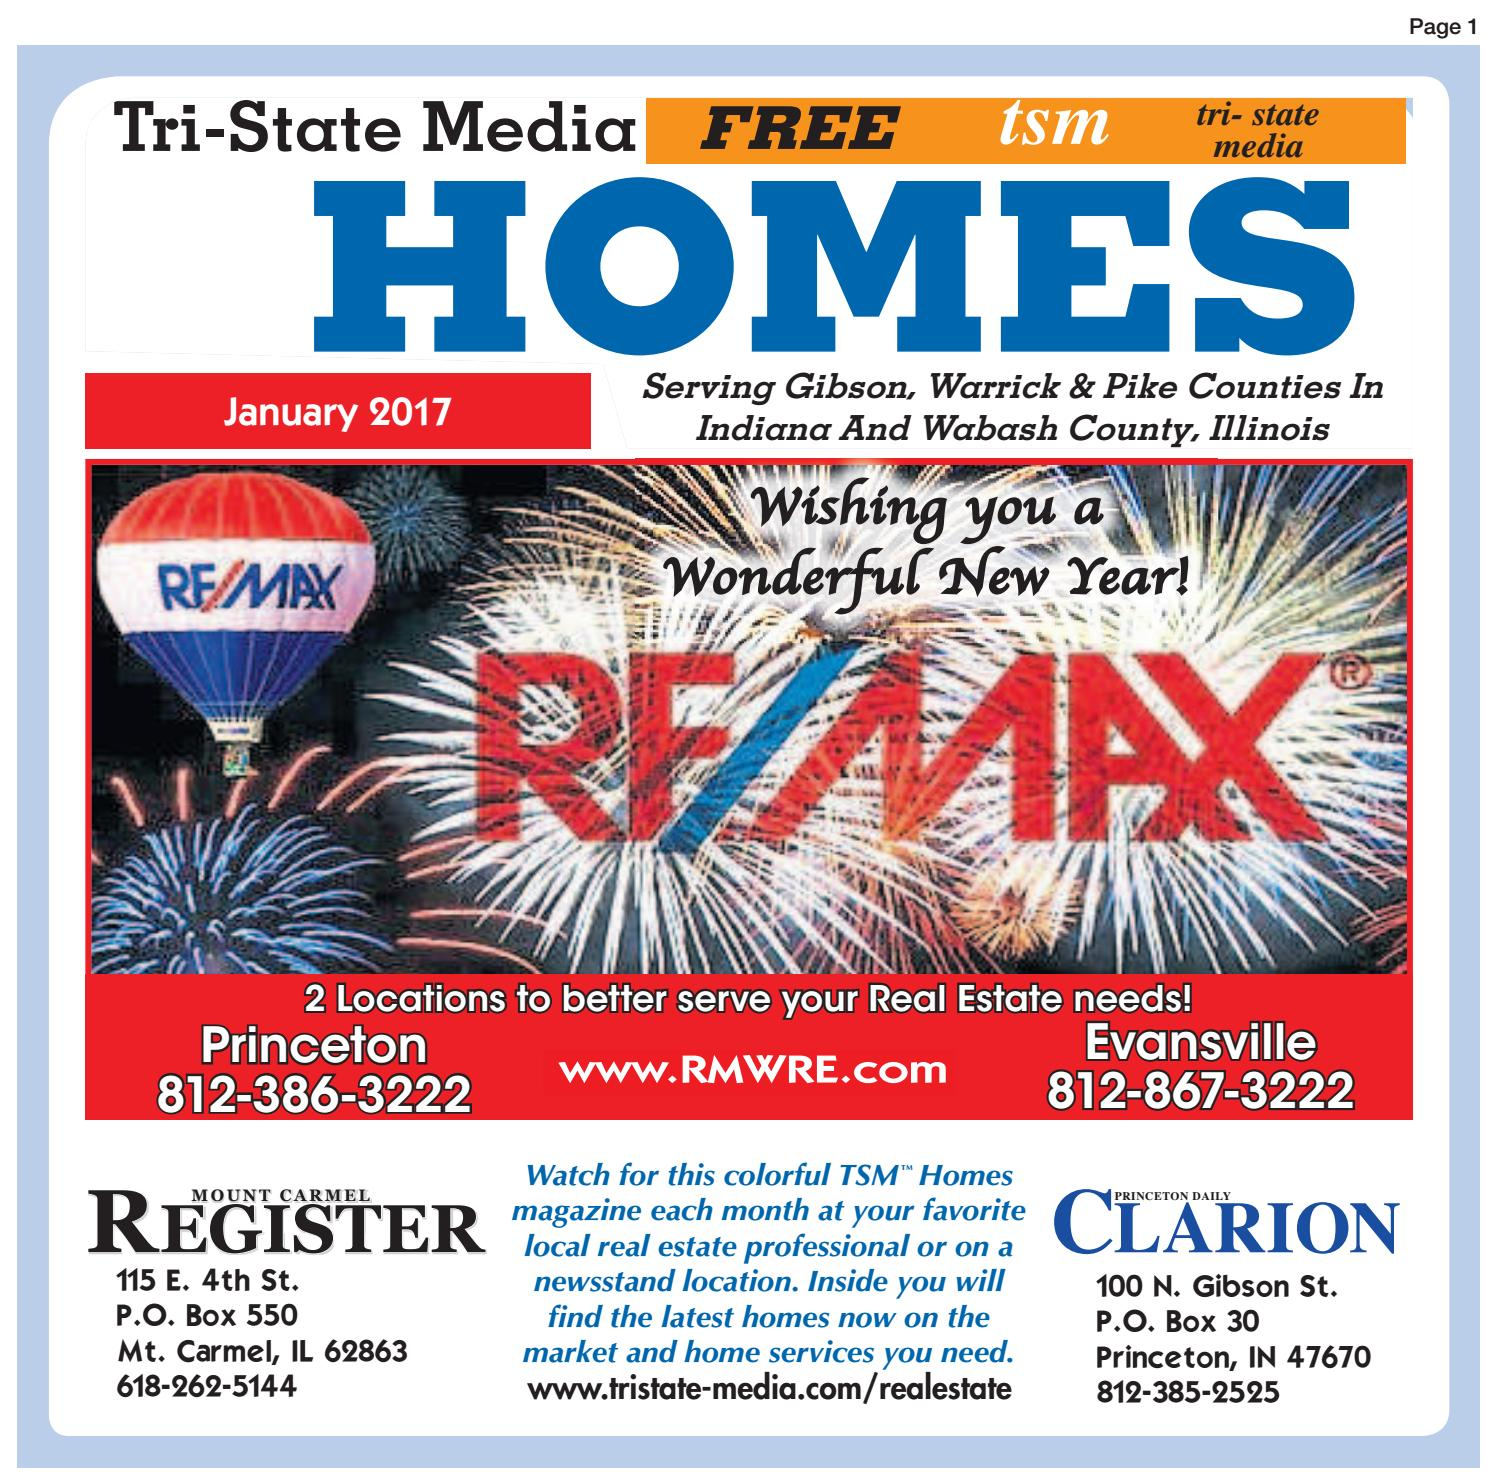 Indiana pike county stendal - Tsm Homes Book January 2017 By Princeton Daily Clarion Mt Carmel Register Warrick Standard Issuu